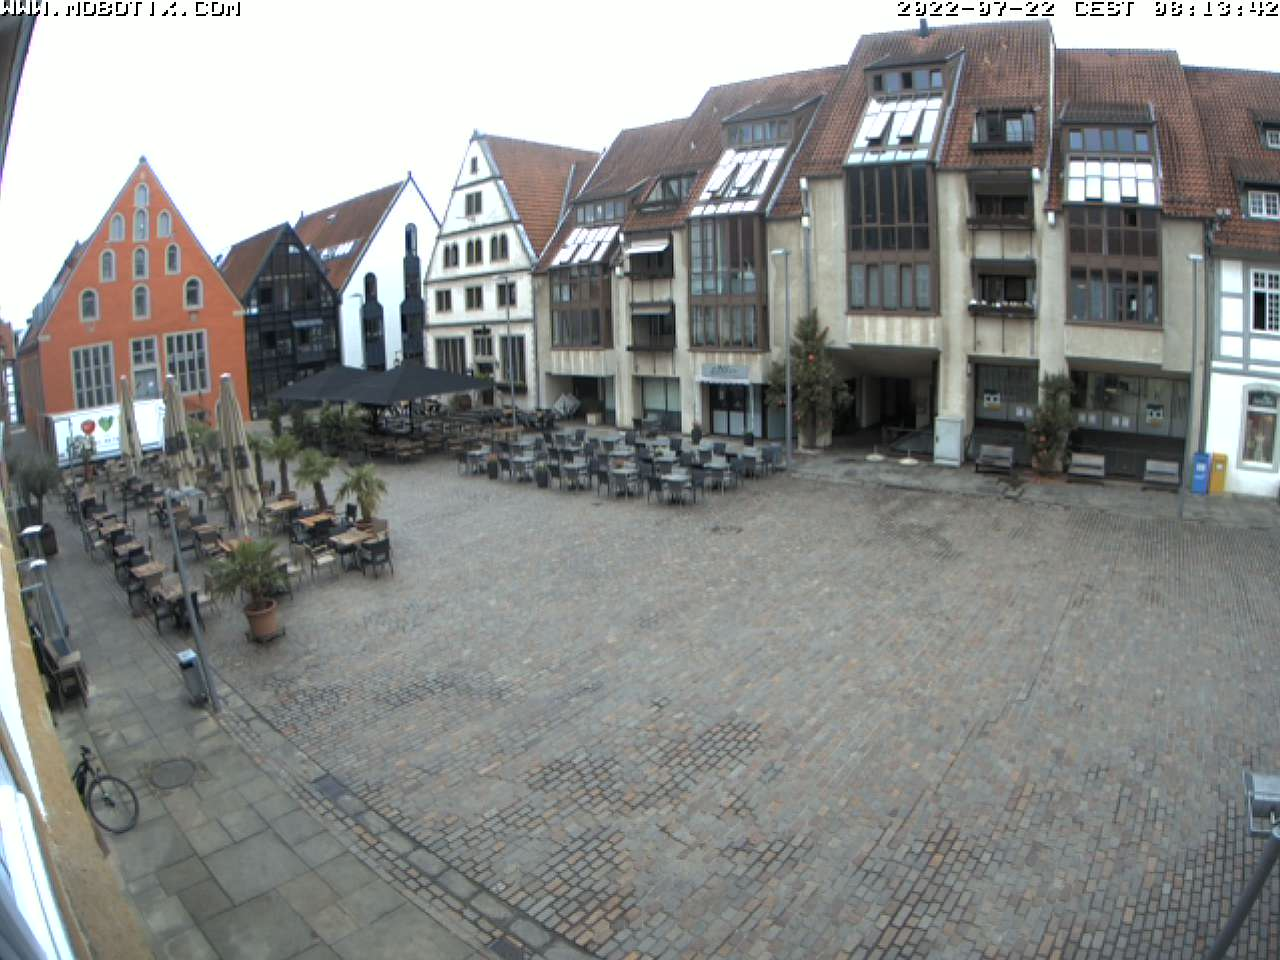 Lemgo Webcam 2